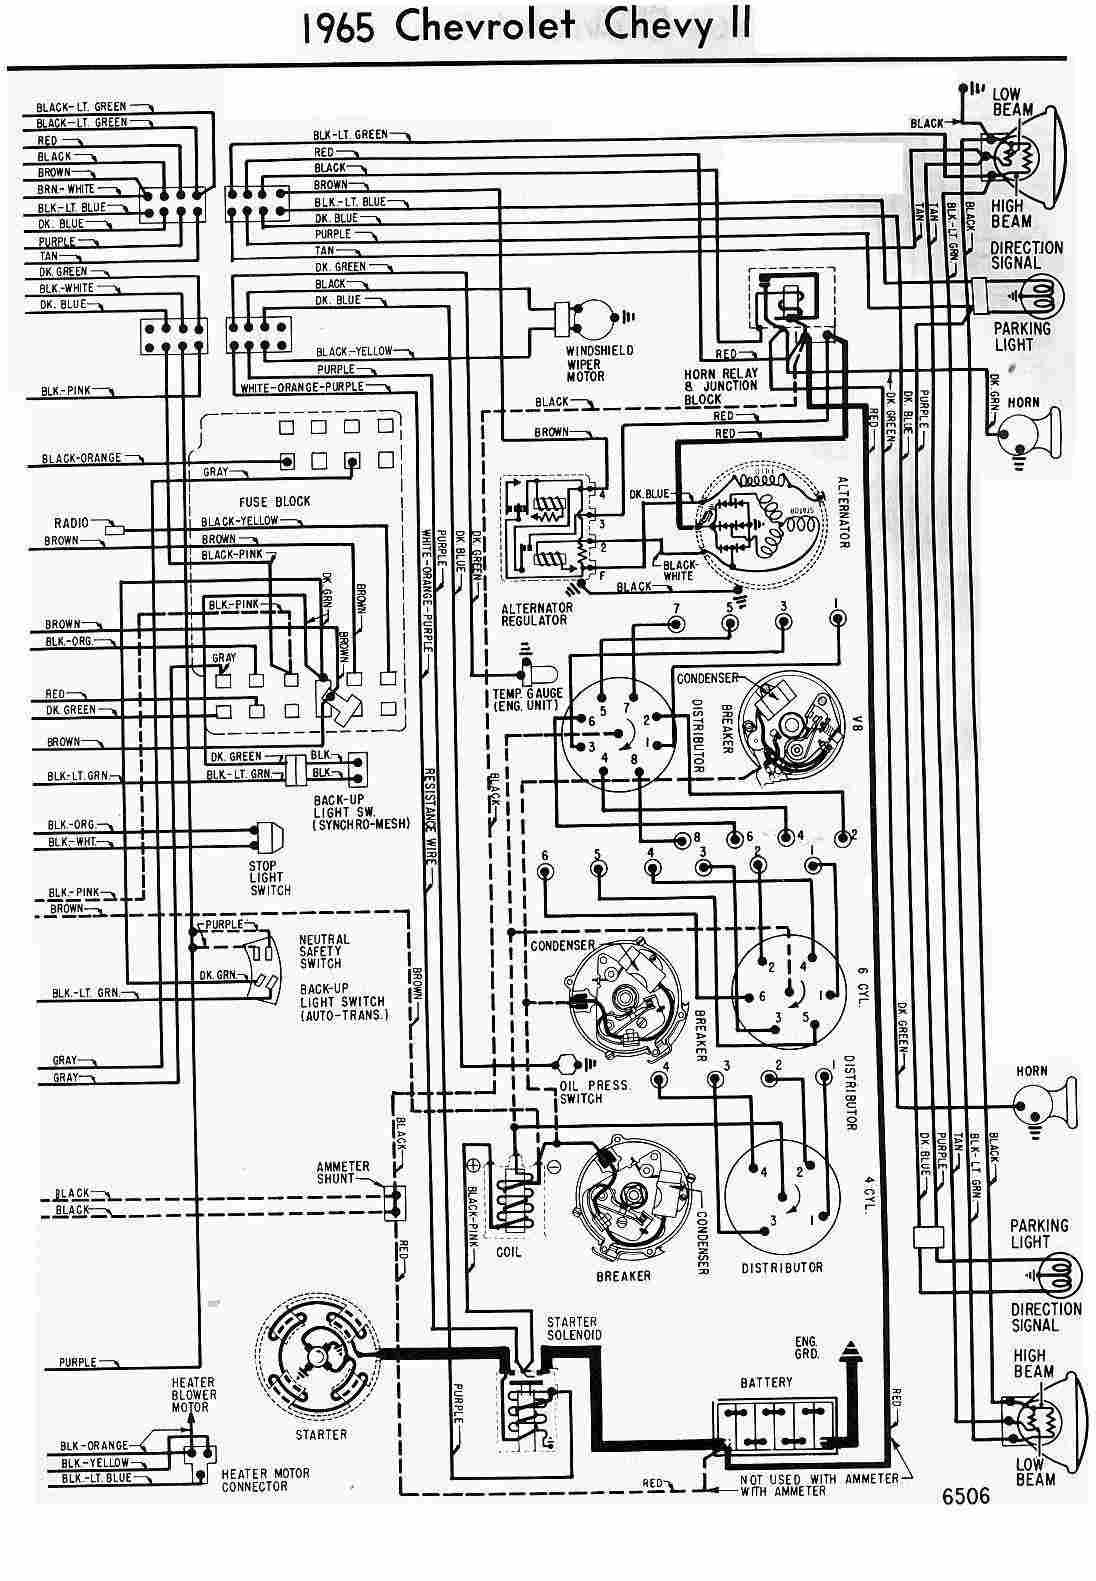 1966 cadillac wiring diagram wiring library 1950 Cadillac Wiring Diagram 1961 impala wiring diagram wiring diagram data 1965 lincoln wiring diagram 1961 cadillac wiring diagram